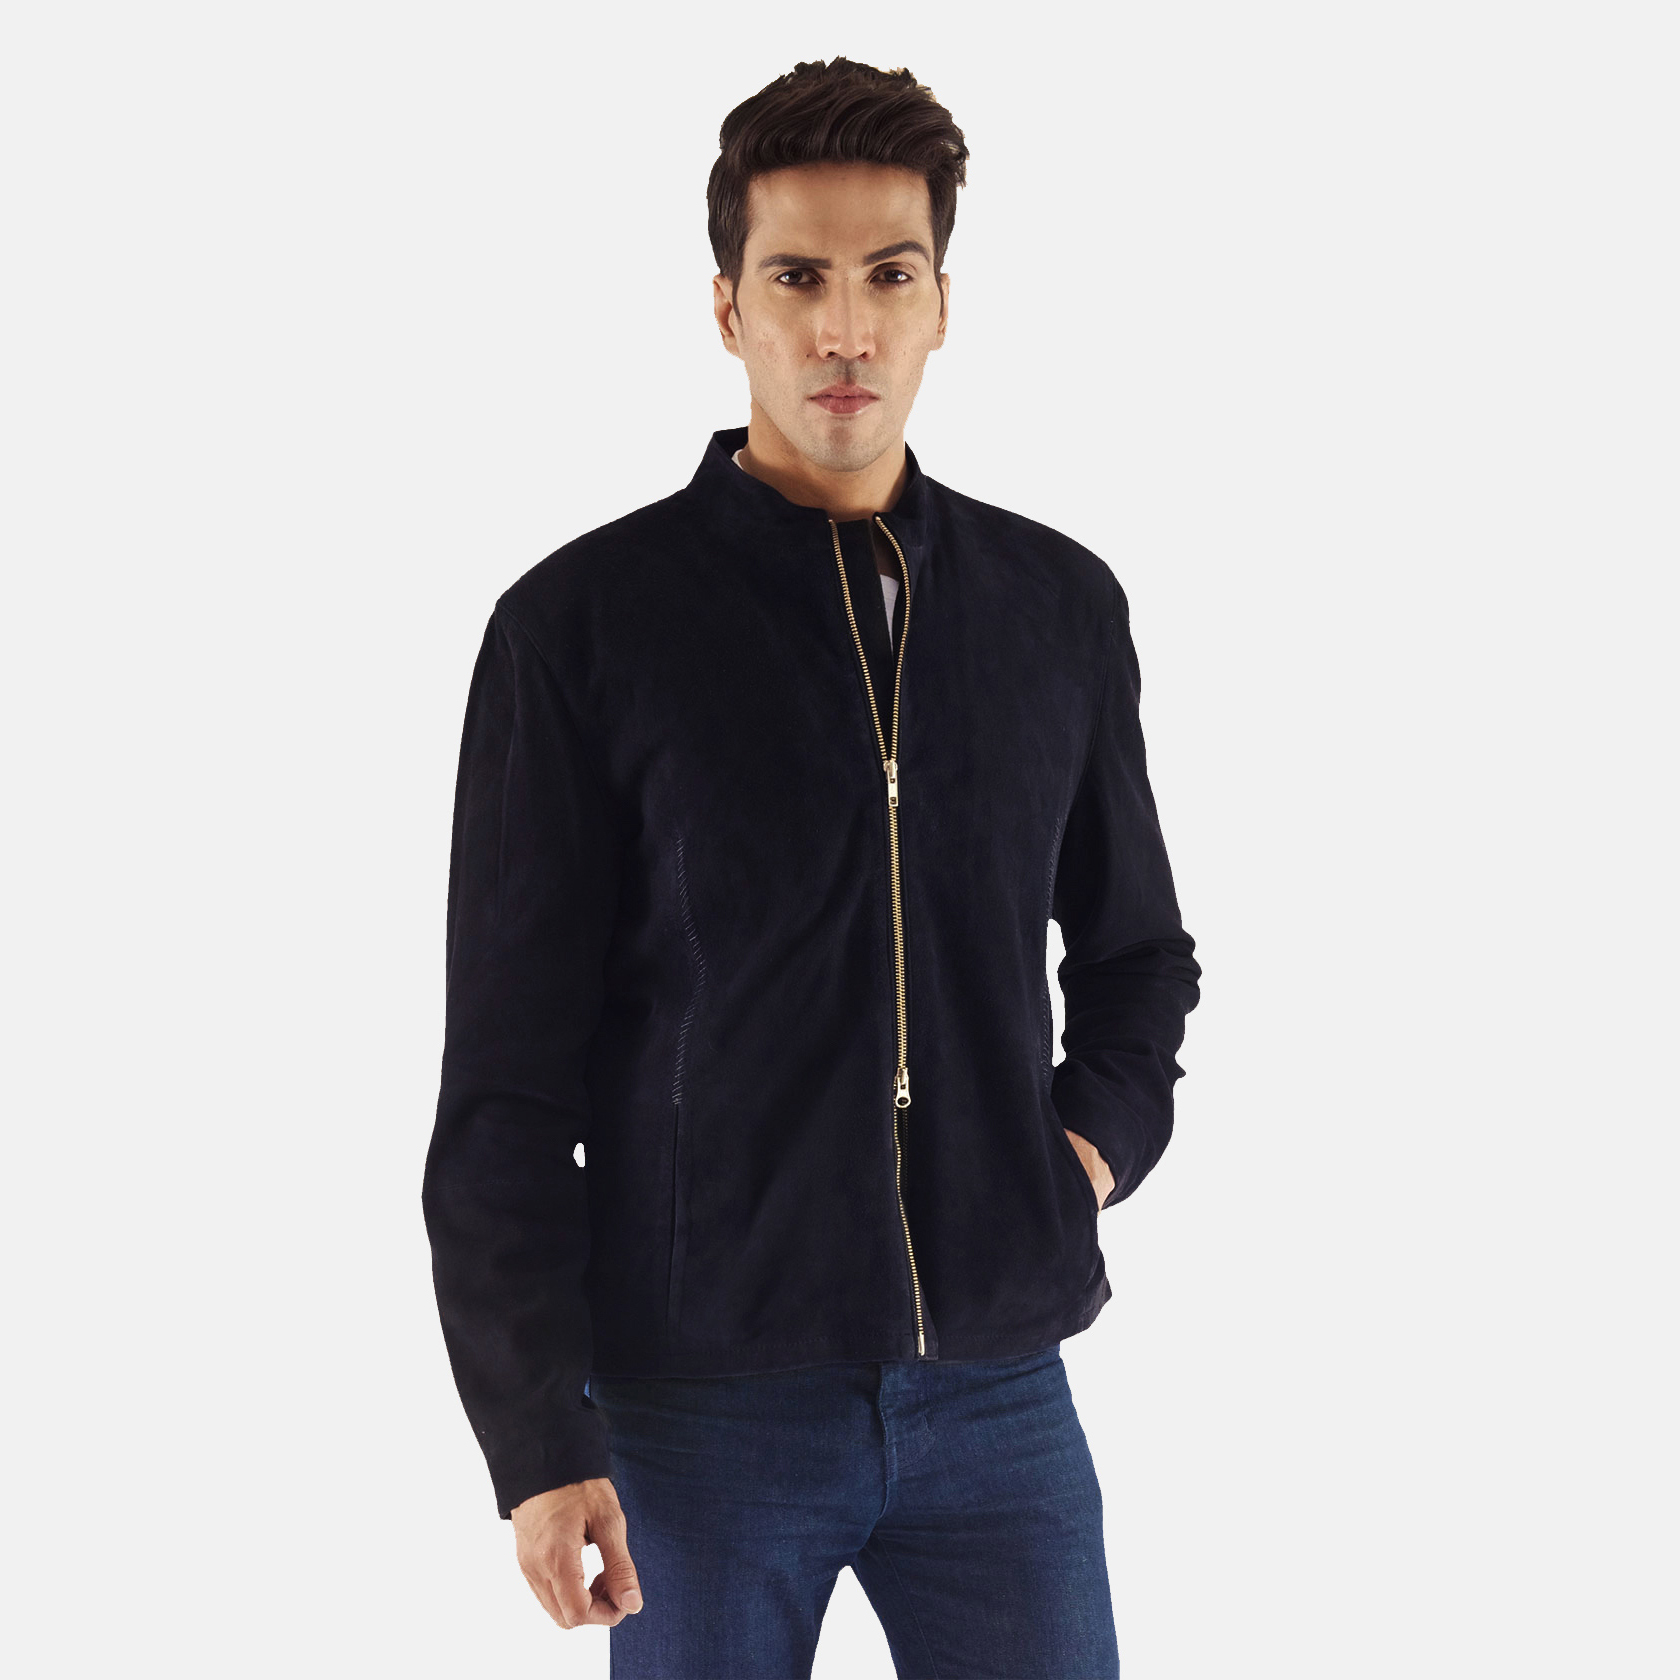 Men's Charcoal Navy Blue Suede Biker Jacket 1